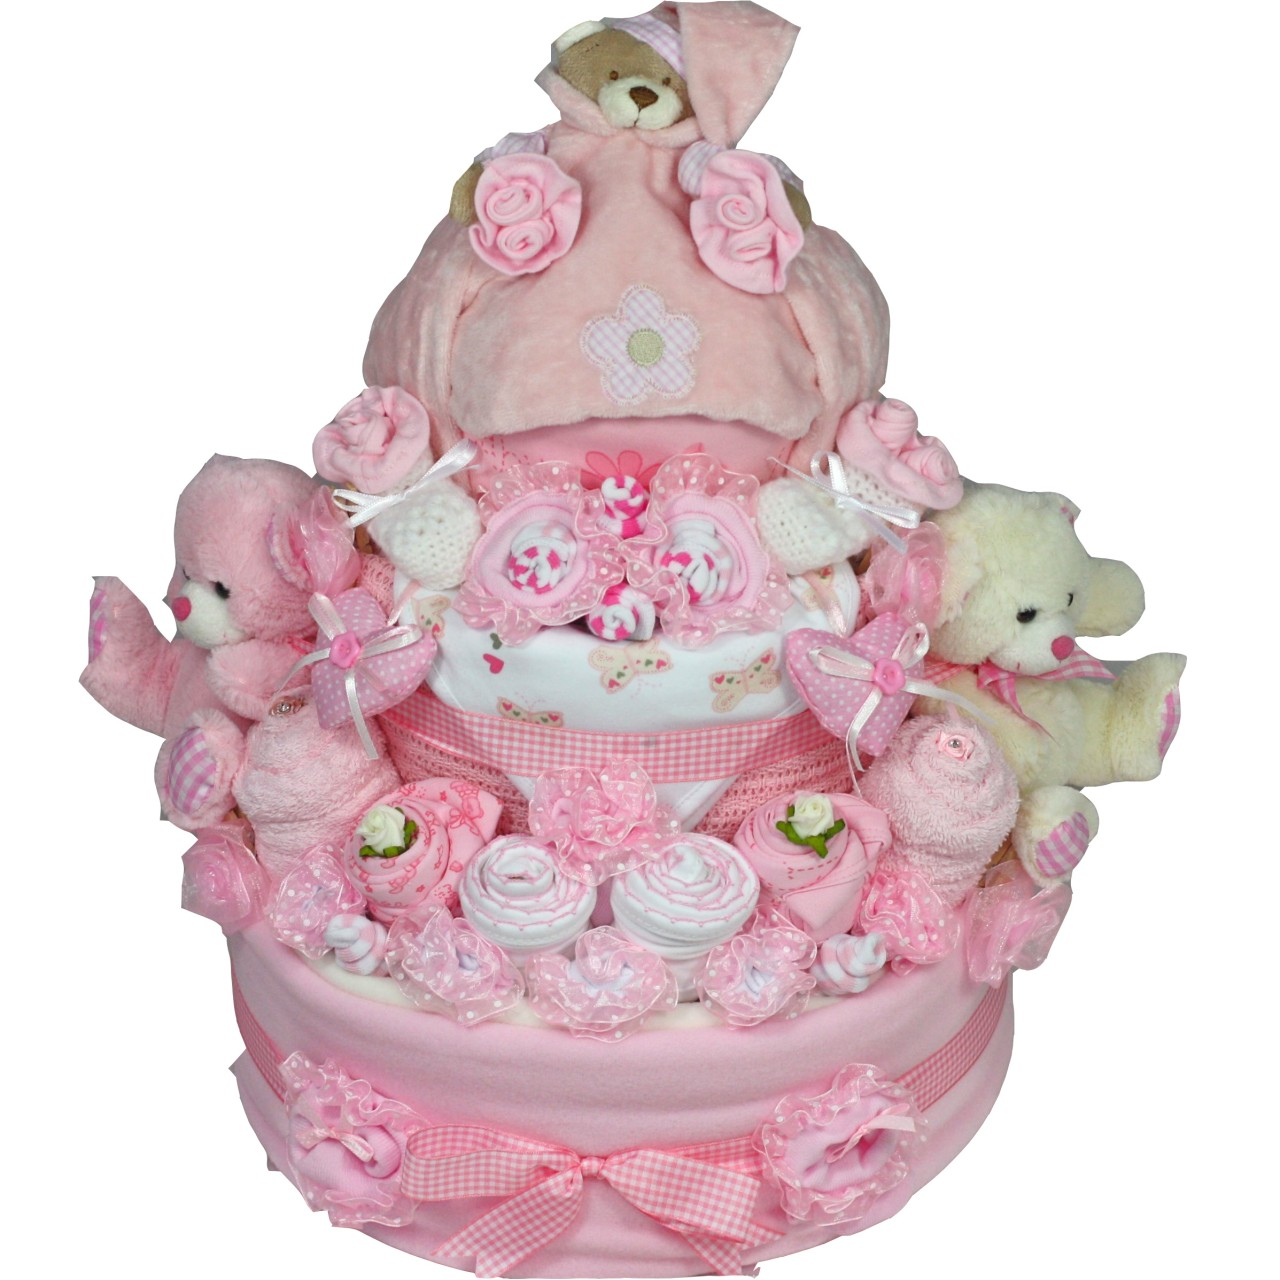 Luxury Baby Girl Or Boy 3 Tier Nappy Cake In 0 6 Months Corporate